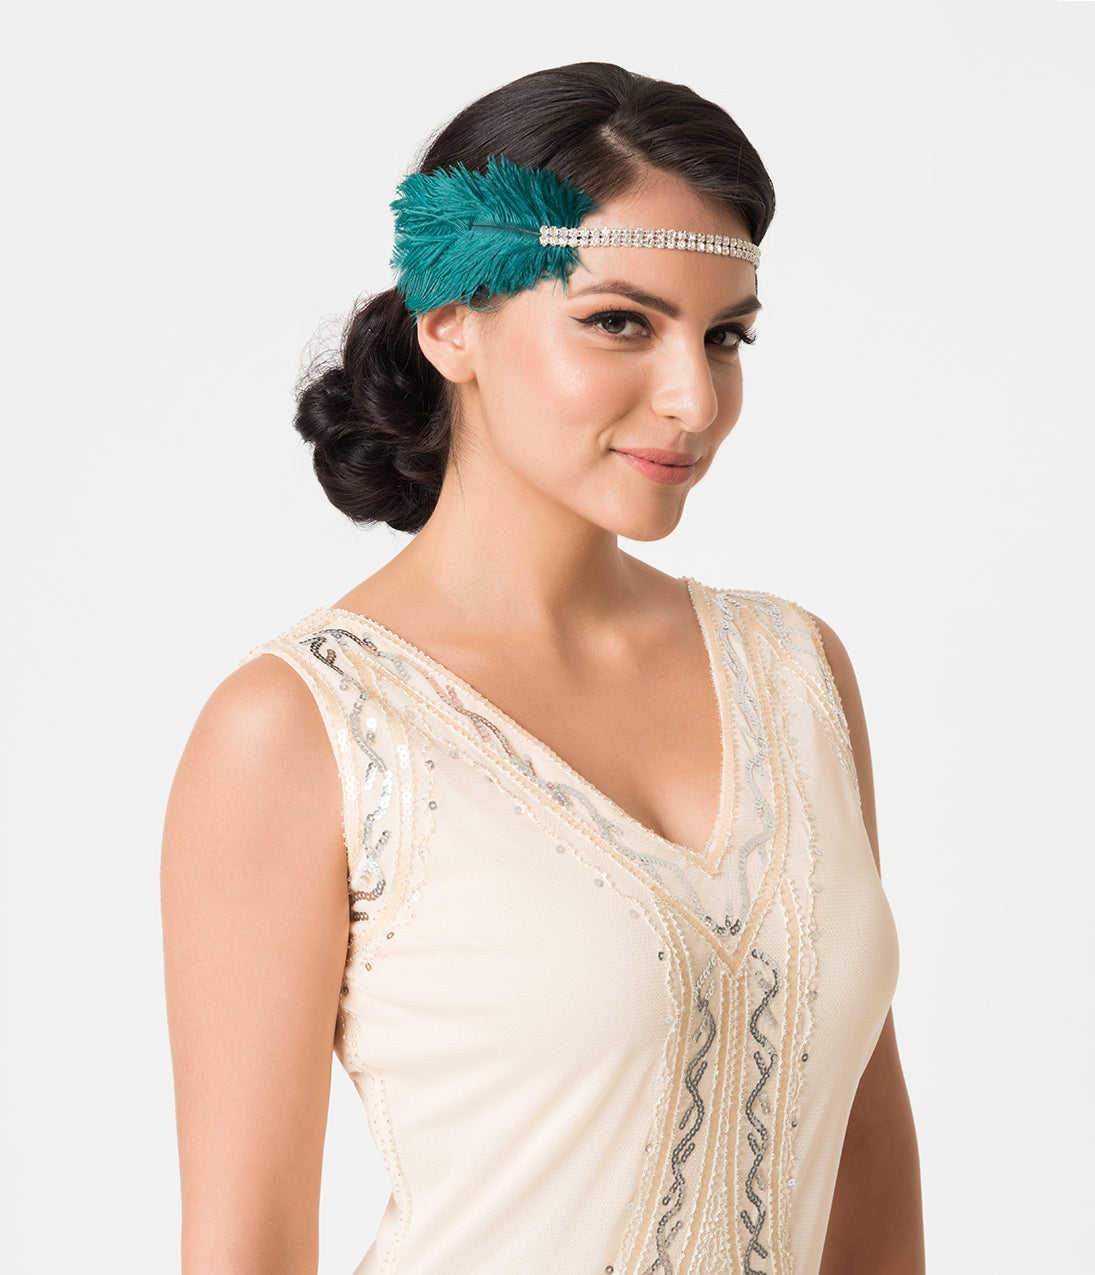 Vintage Hair Accessories: Combs, Headbands, Flowers, Scarf, Wigs Turquoise Feathers  Silver Crystal Ruby Flapper Headband $38.00 AT vintagedancer.com